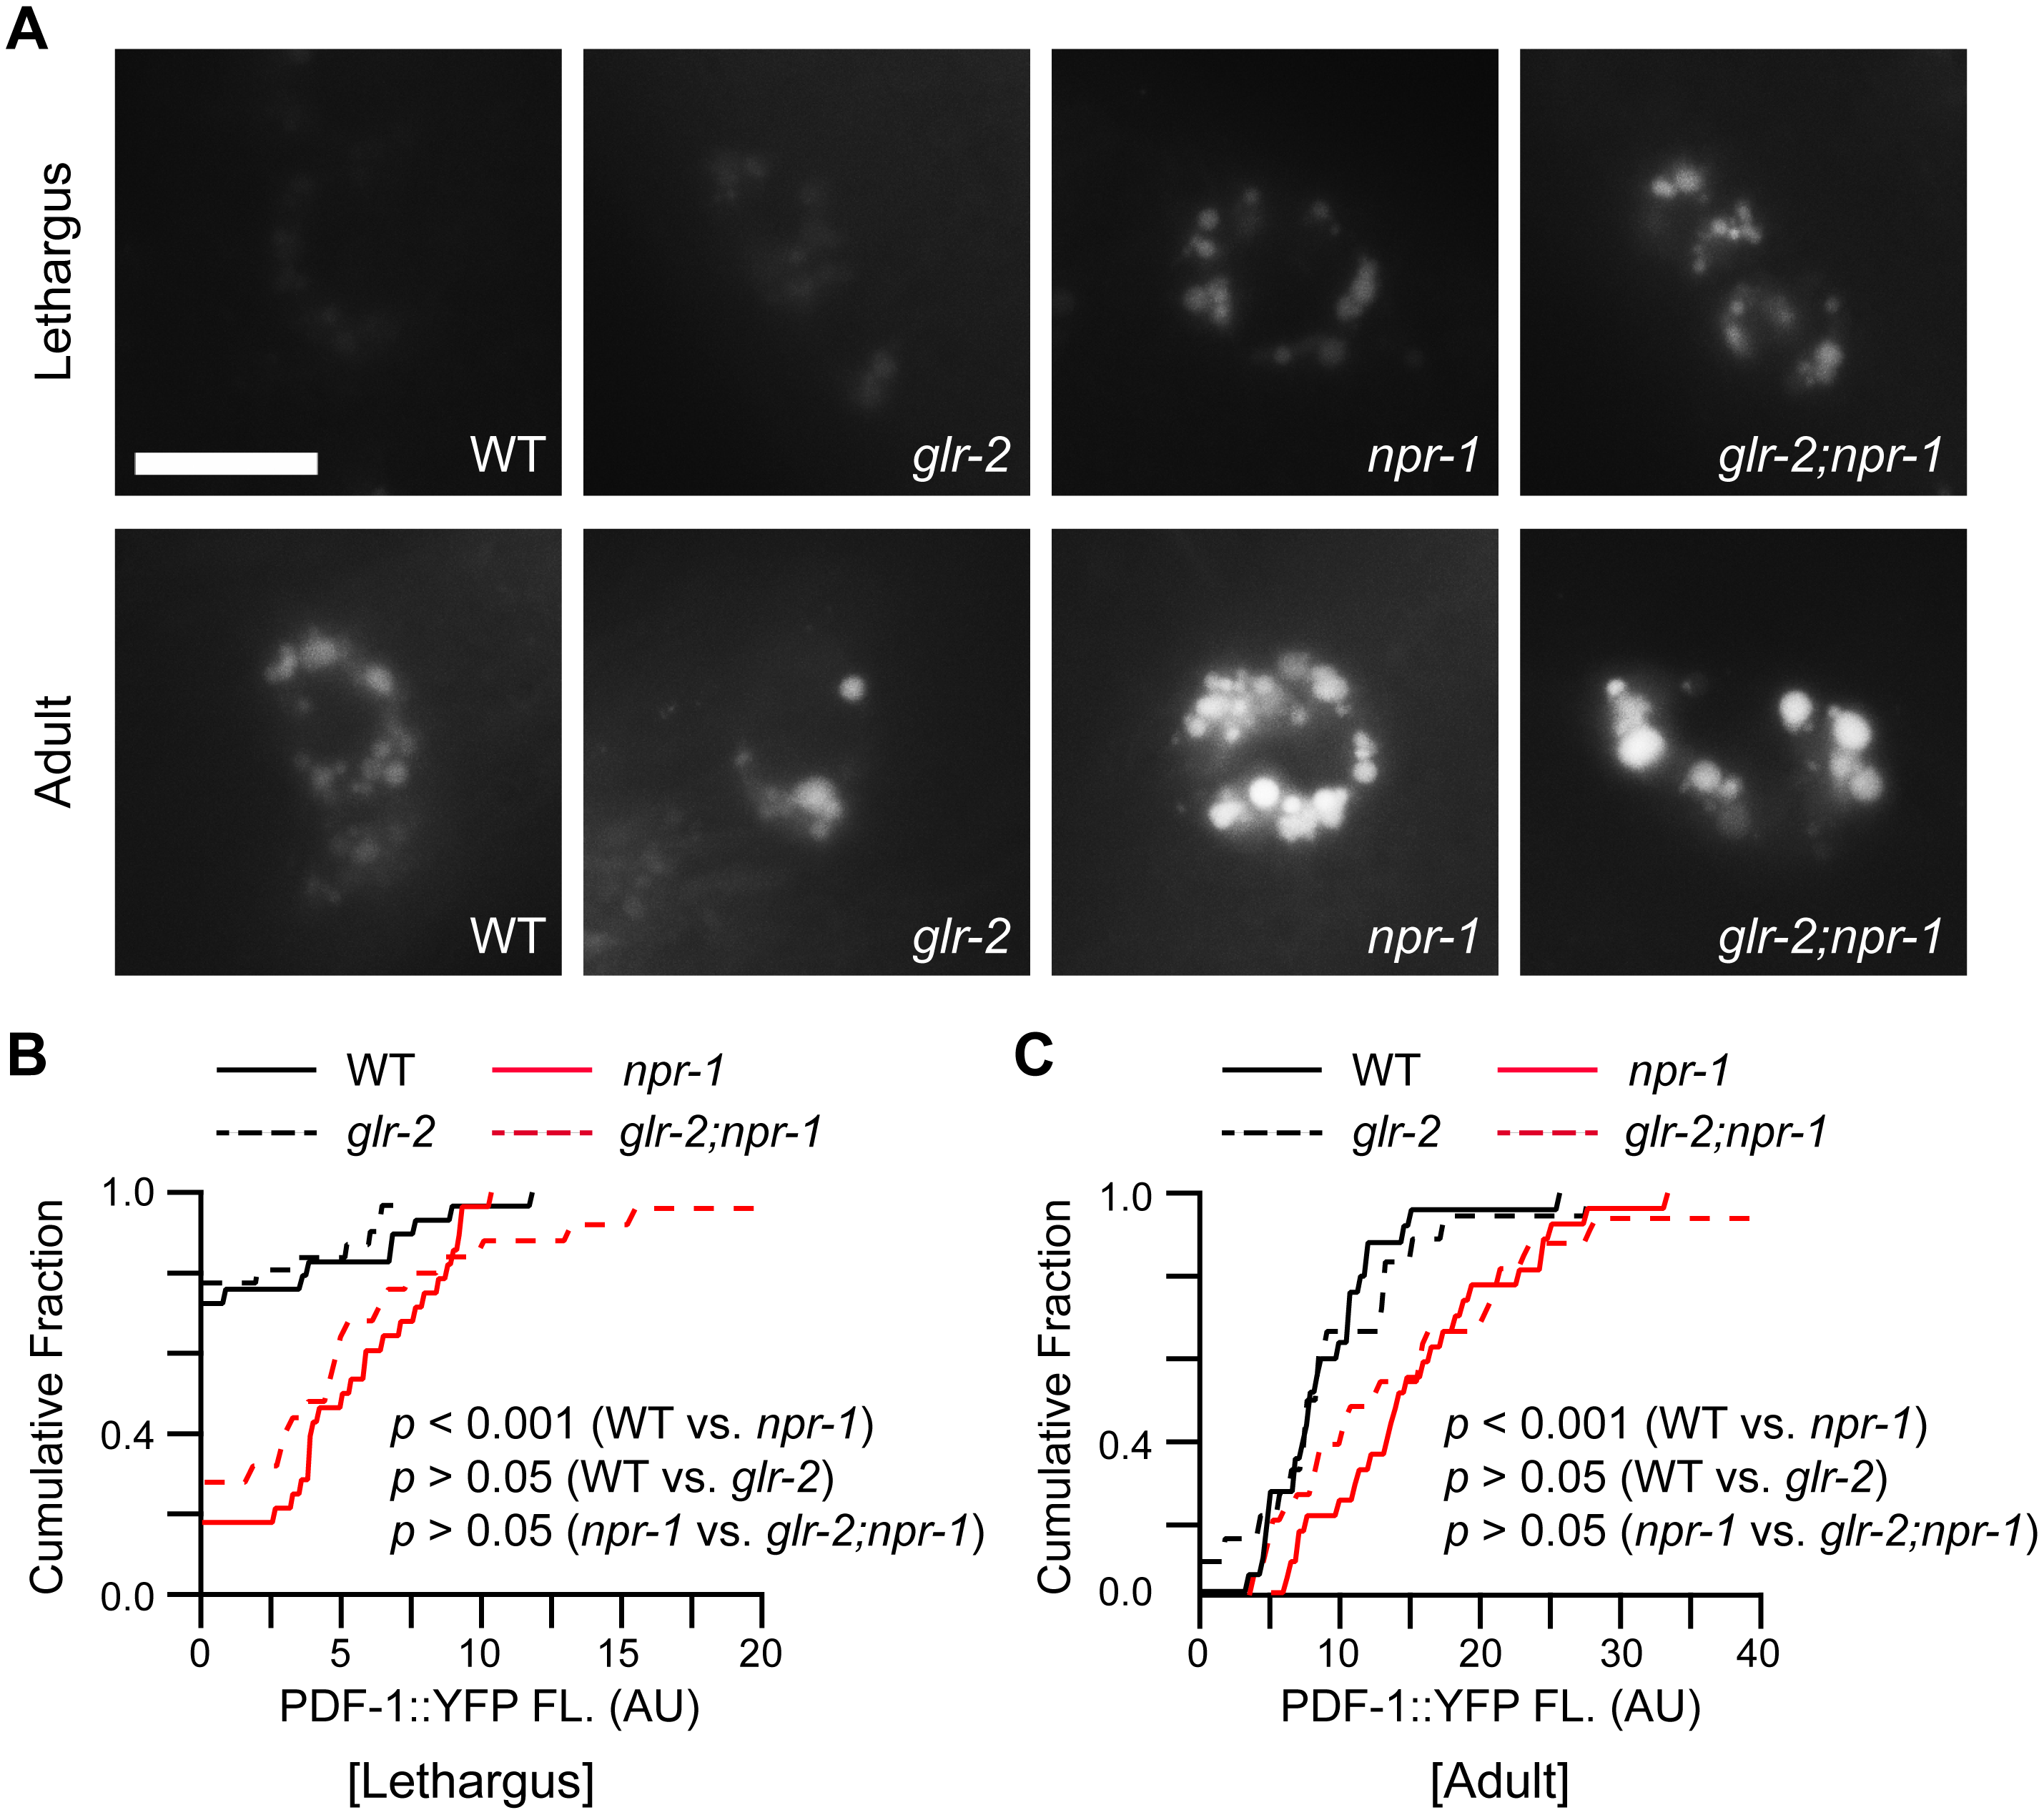 PDF-1 secretion is not altered in <i>glr-2</i> mutants.